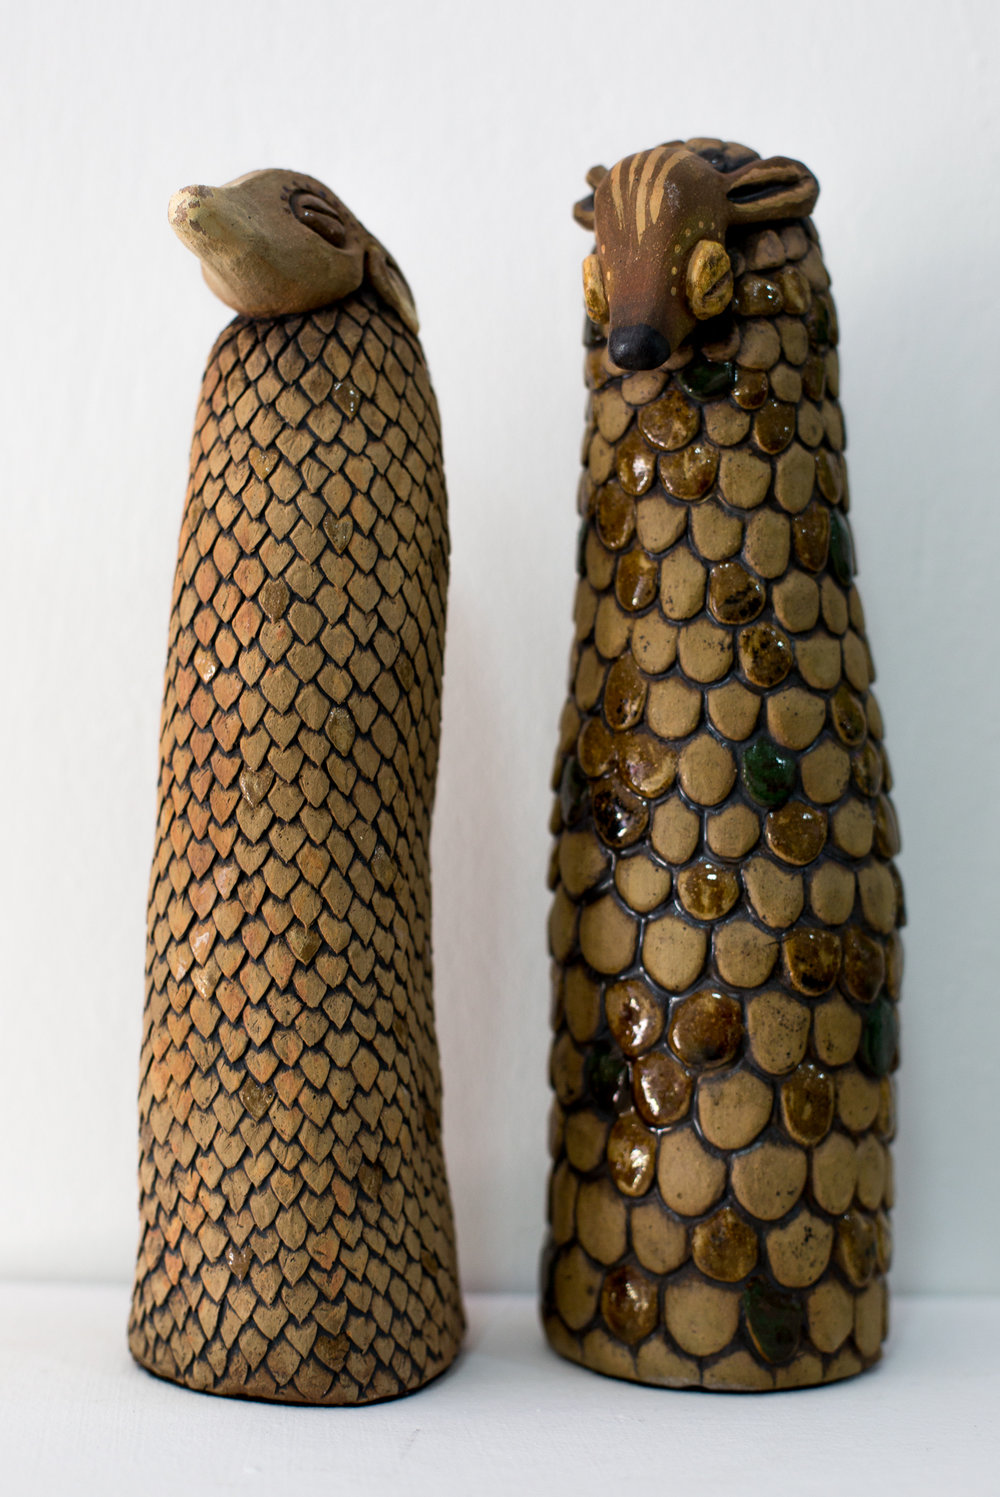 ' Sentential ' (Left)   Alexis Aronson  Ceramic and metal oxides  270 mm tall  R 5000.00 excl. vat  &' Friends of Oaks' (Right)  Alexis Aronson  Ceramic and metal oxides  280 mm tall  R 5000.00 excl. vat